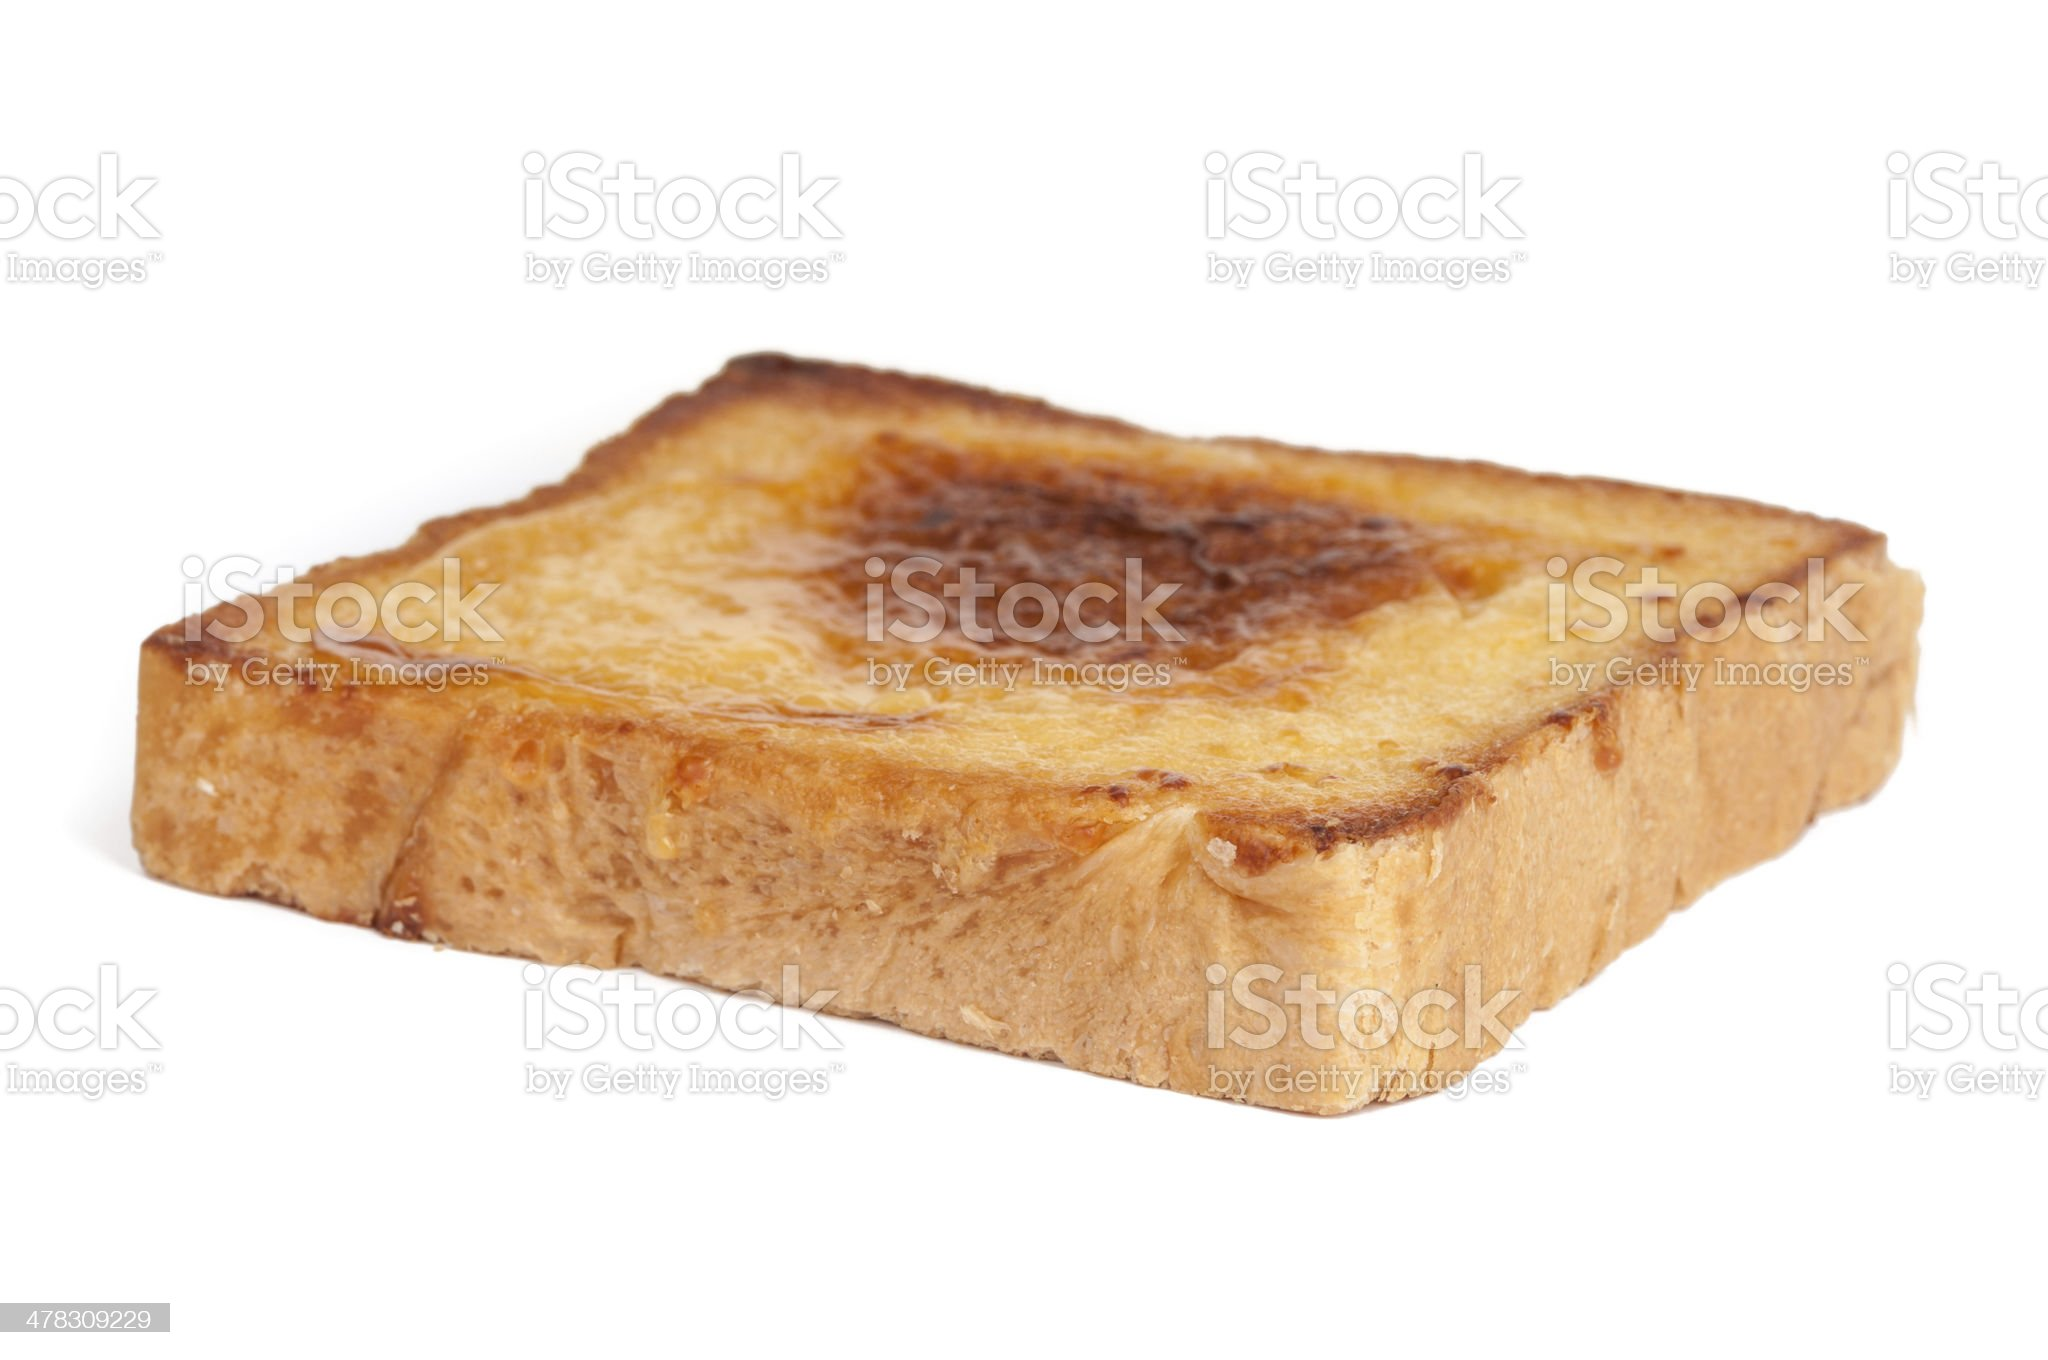 the slice of bread royalty-free stock photo